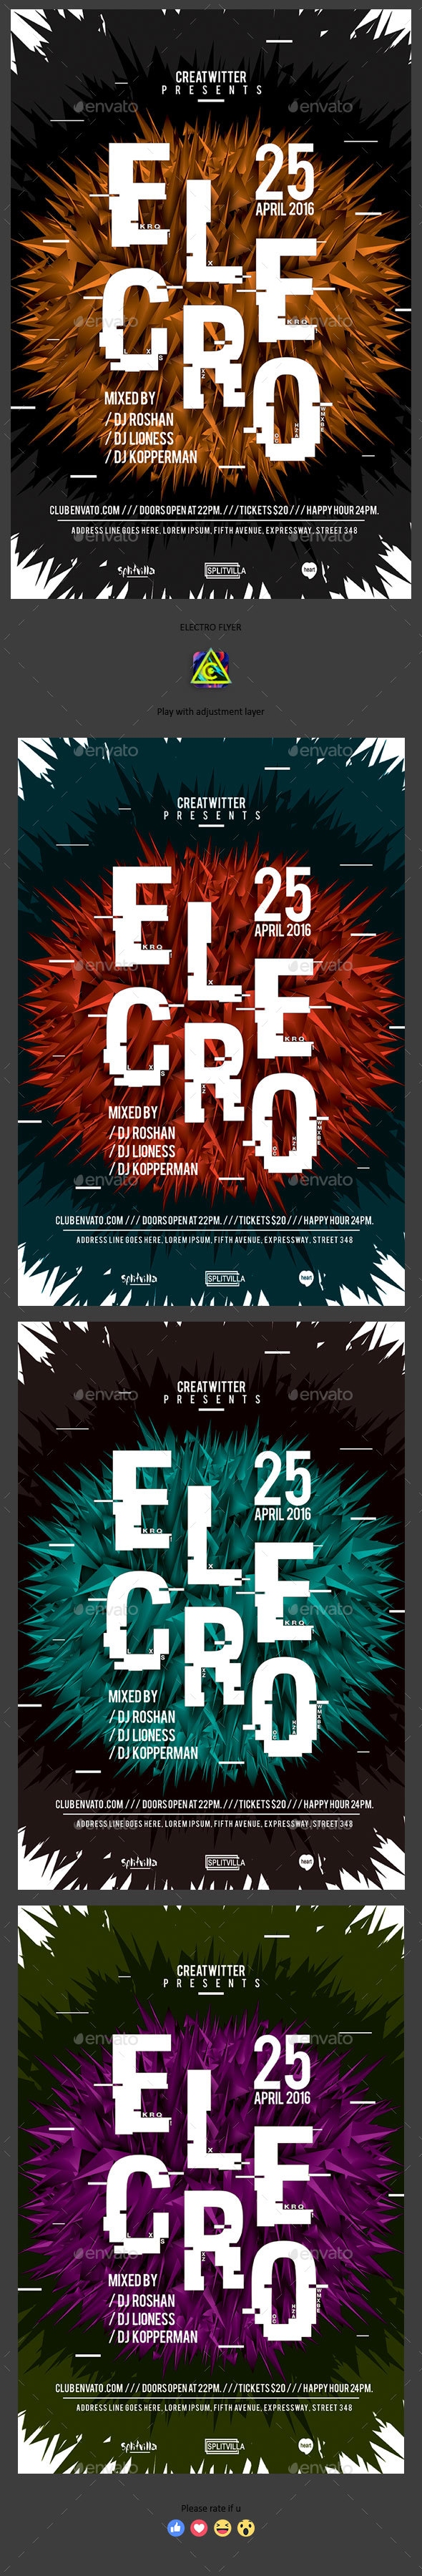 Electro Flyer - Clubs & Parties Events